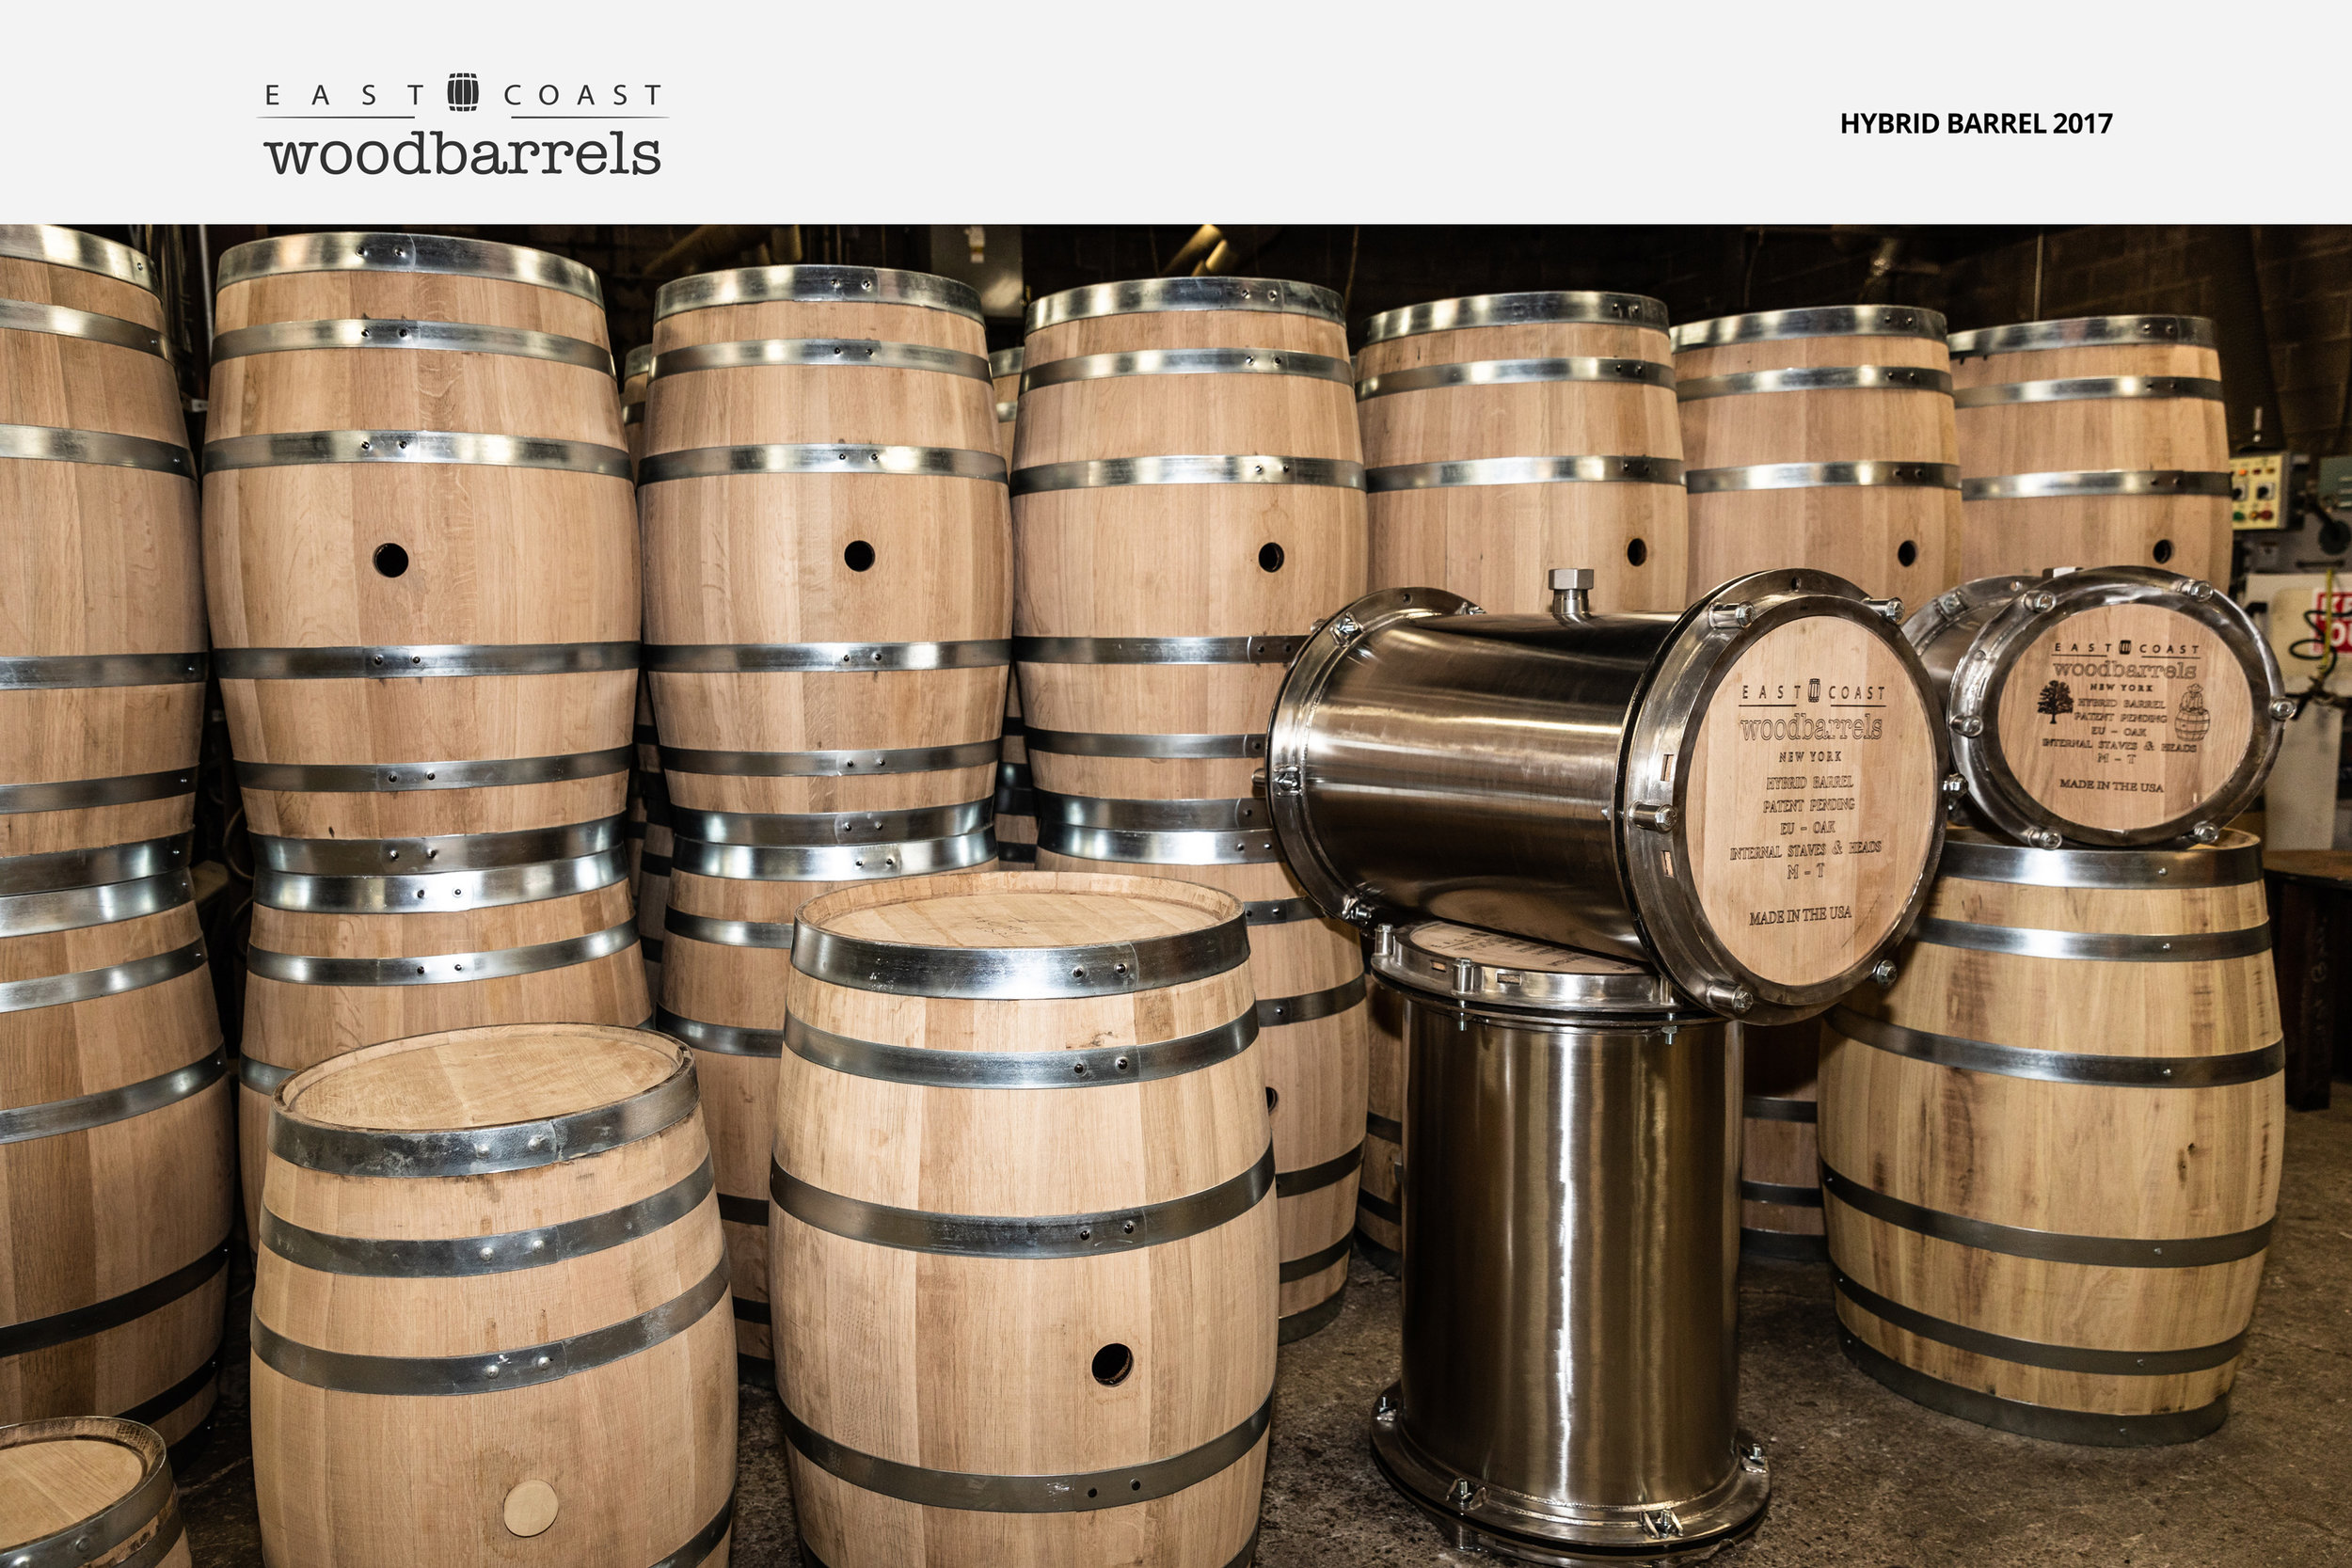 EAST-COAST-WOOD-BARRELS-WEB-IMAGES-5.jpg